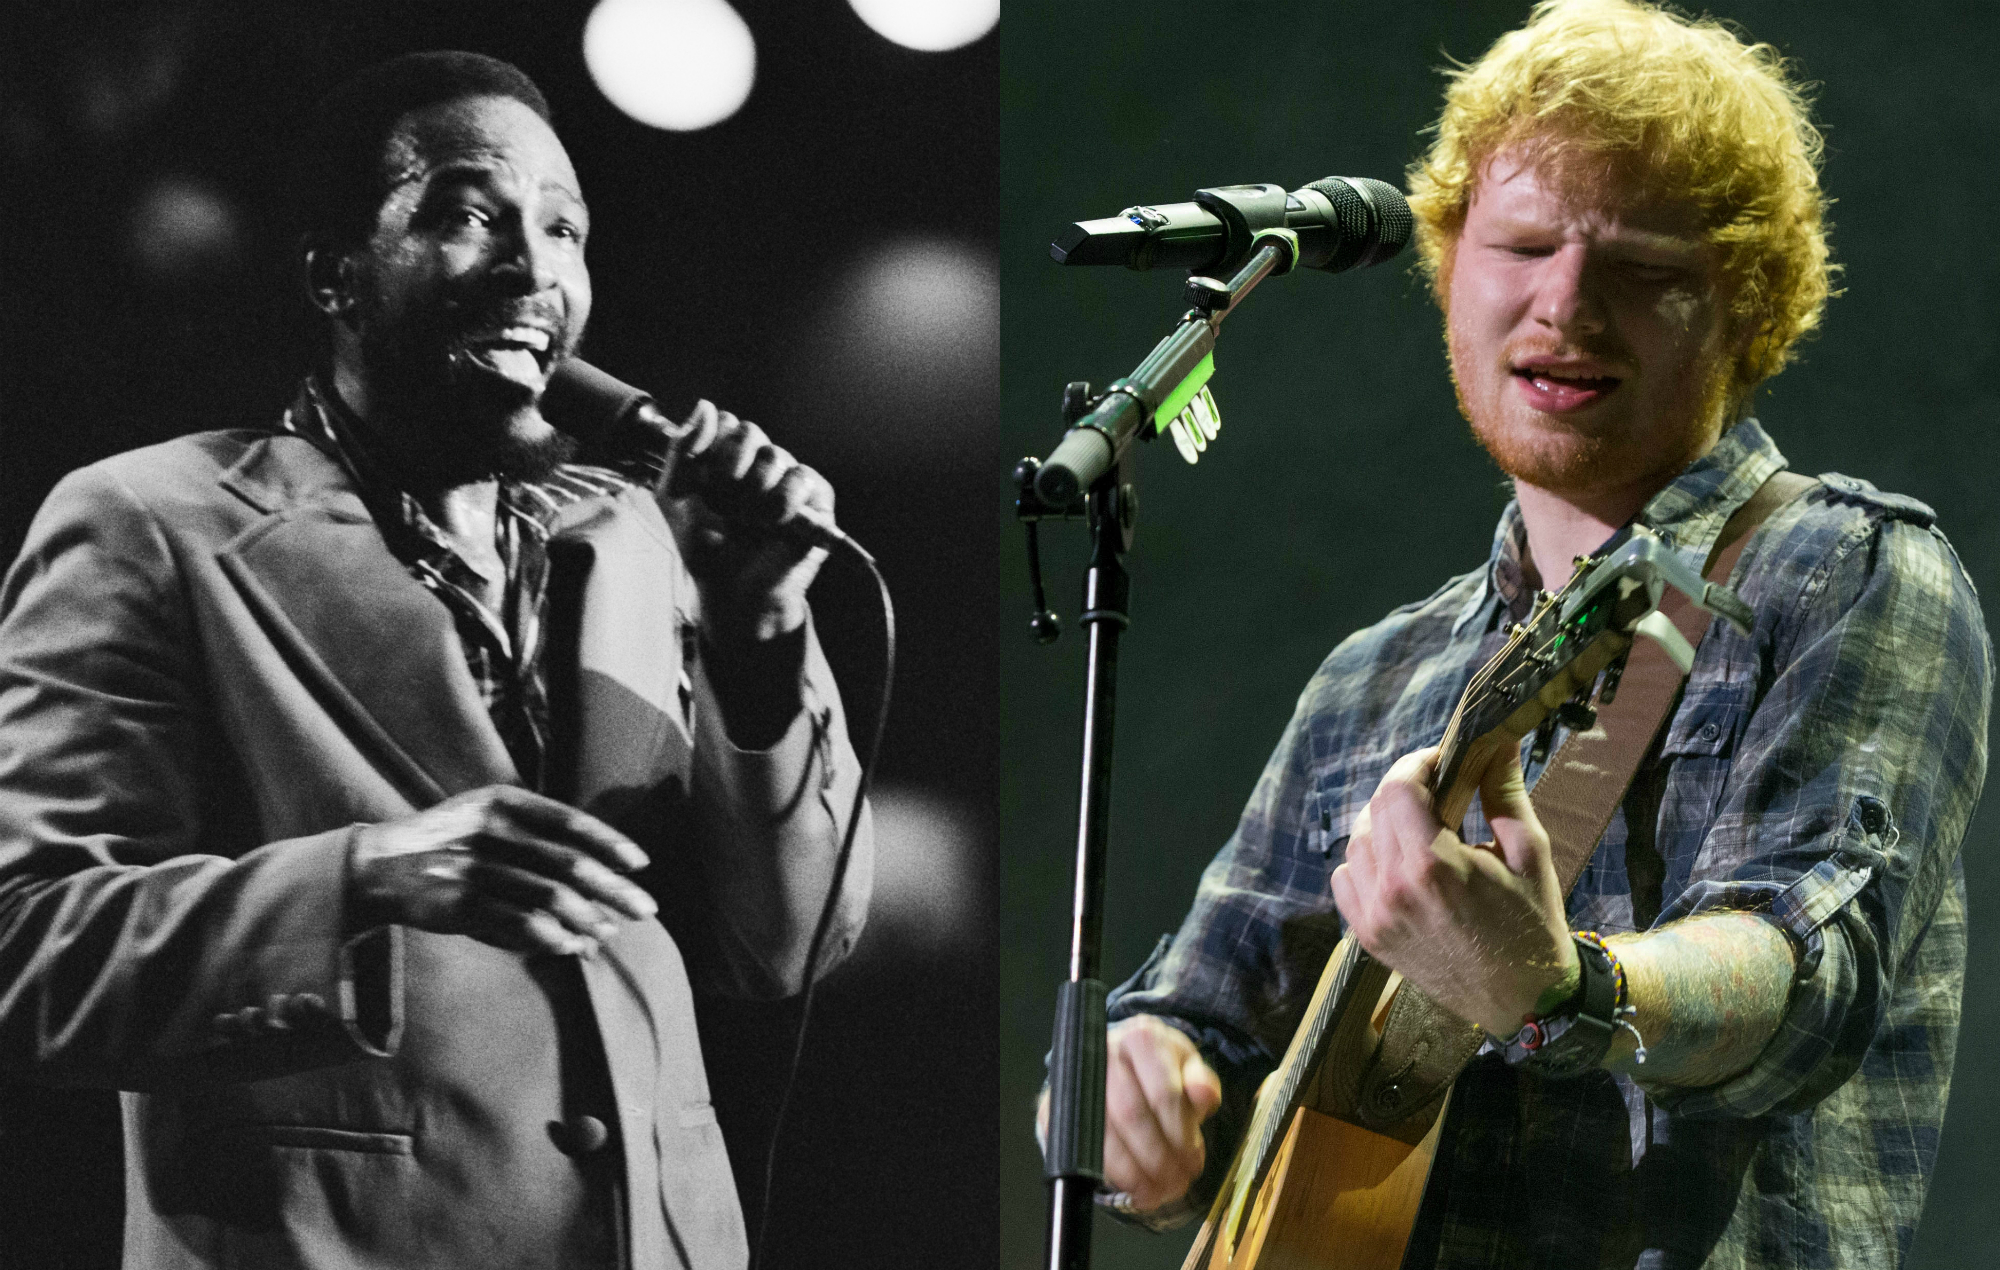 Marvin Gaye/ Ed Sheeran